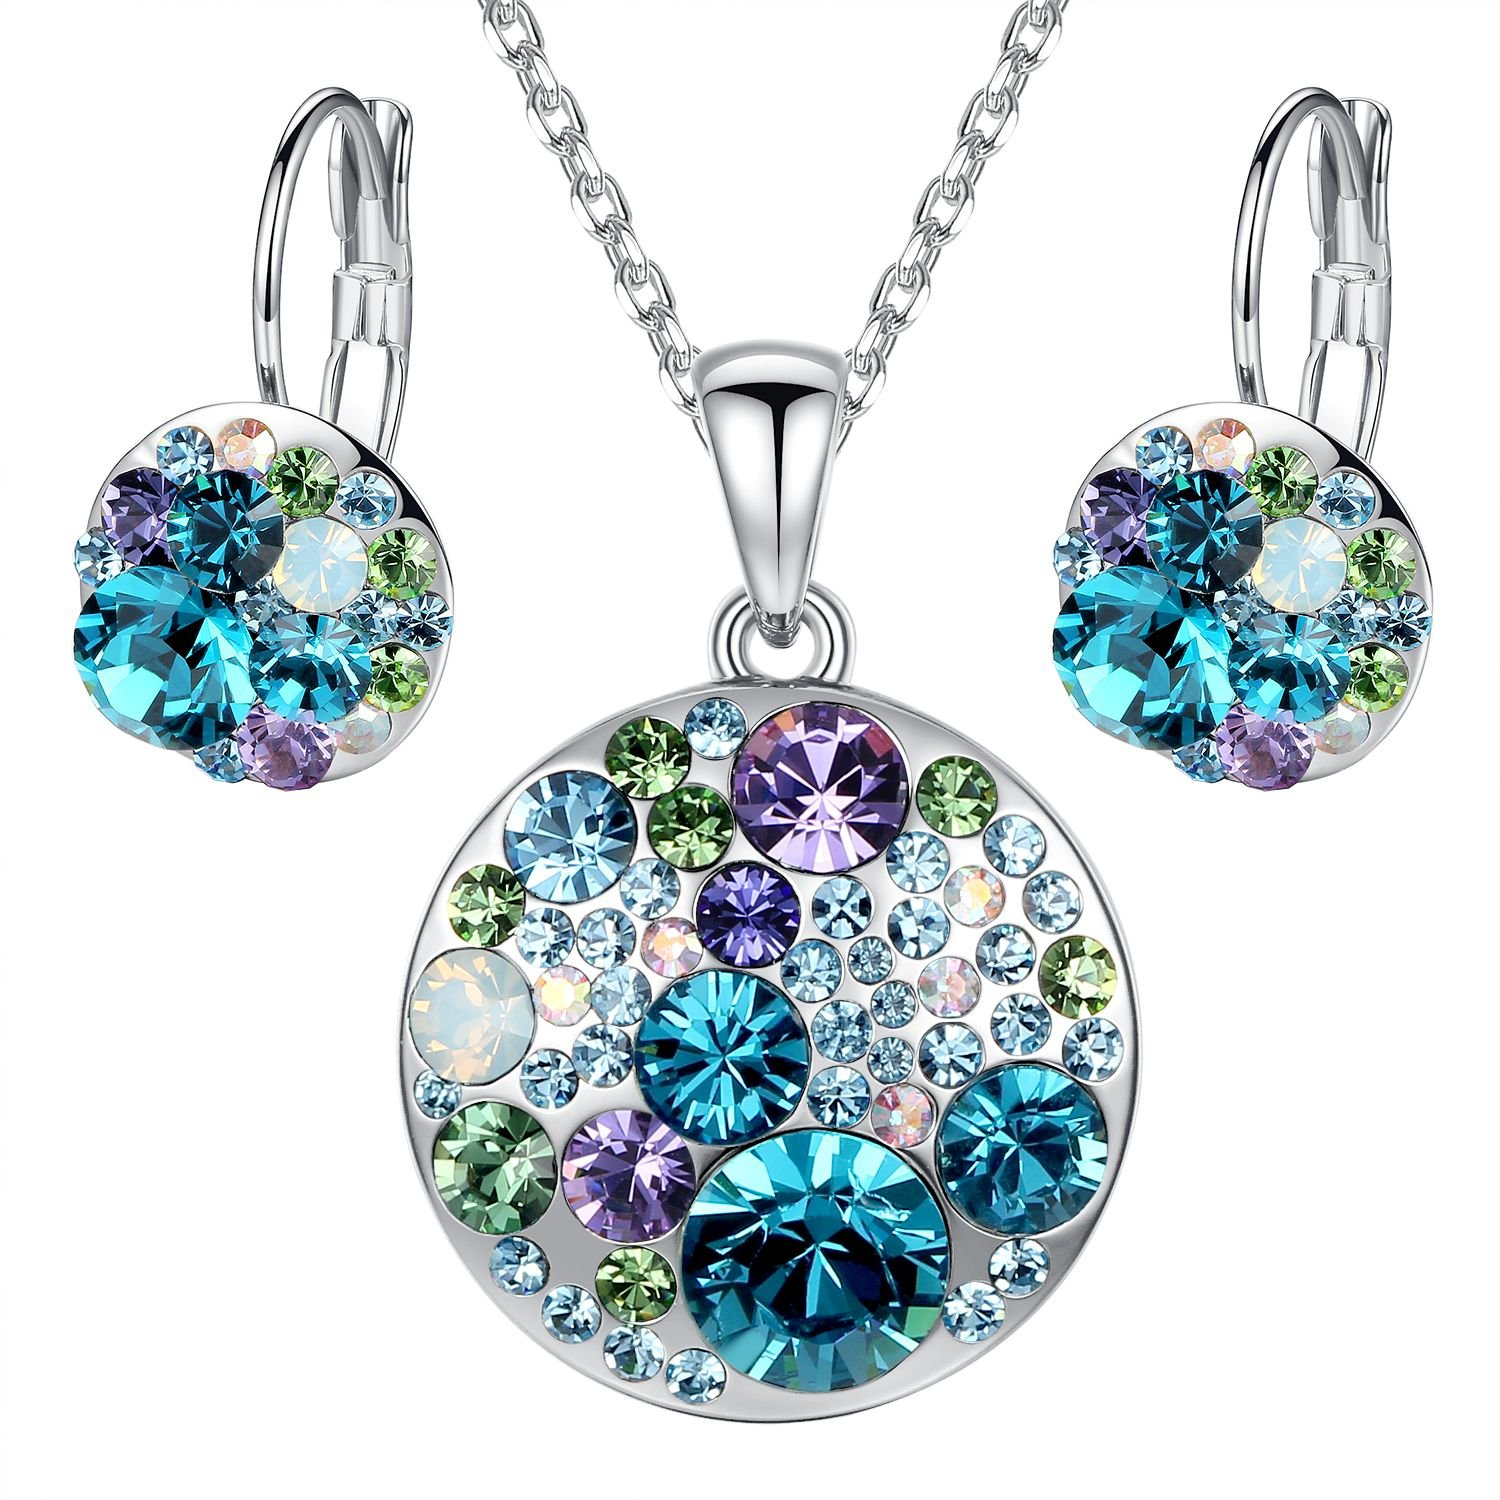 Leafael [Presented by Miss New York Ocean Bubble Made with Swarovski Crystals Multi-stone Blue Green Purple Pendant Necklace Earrings Jewelry Set, Si